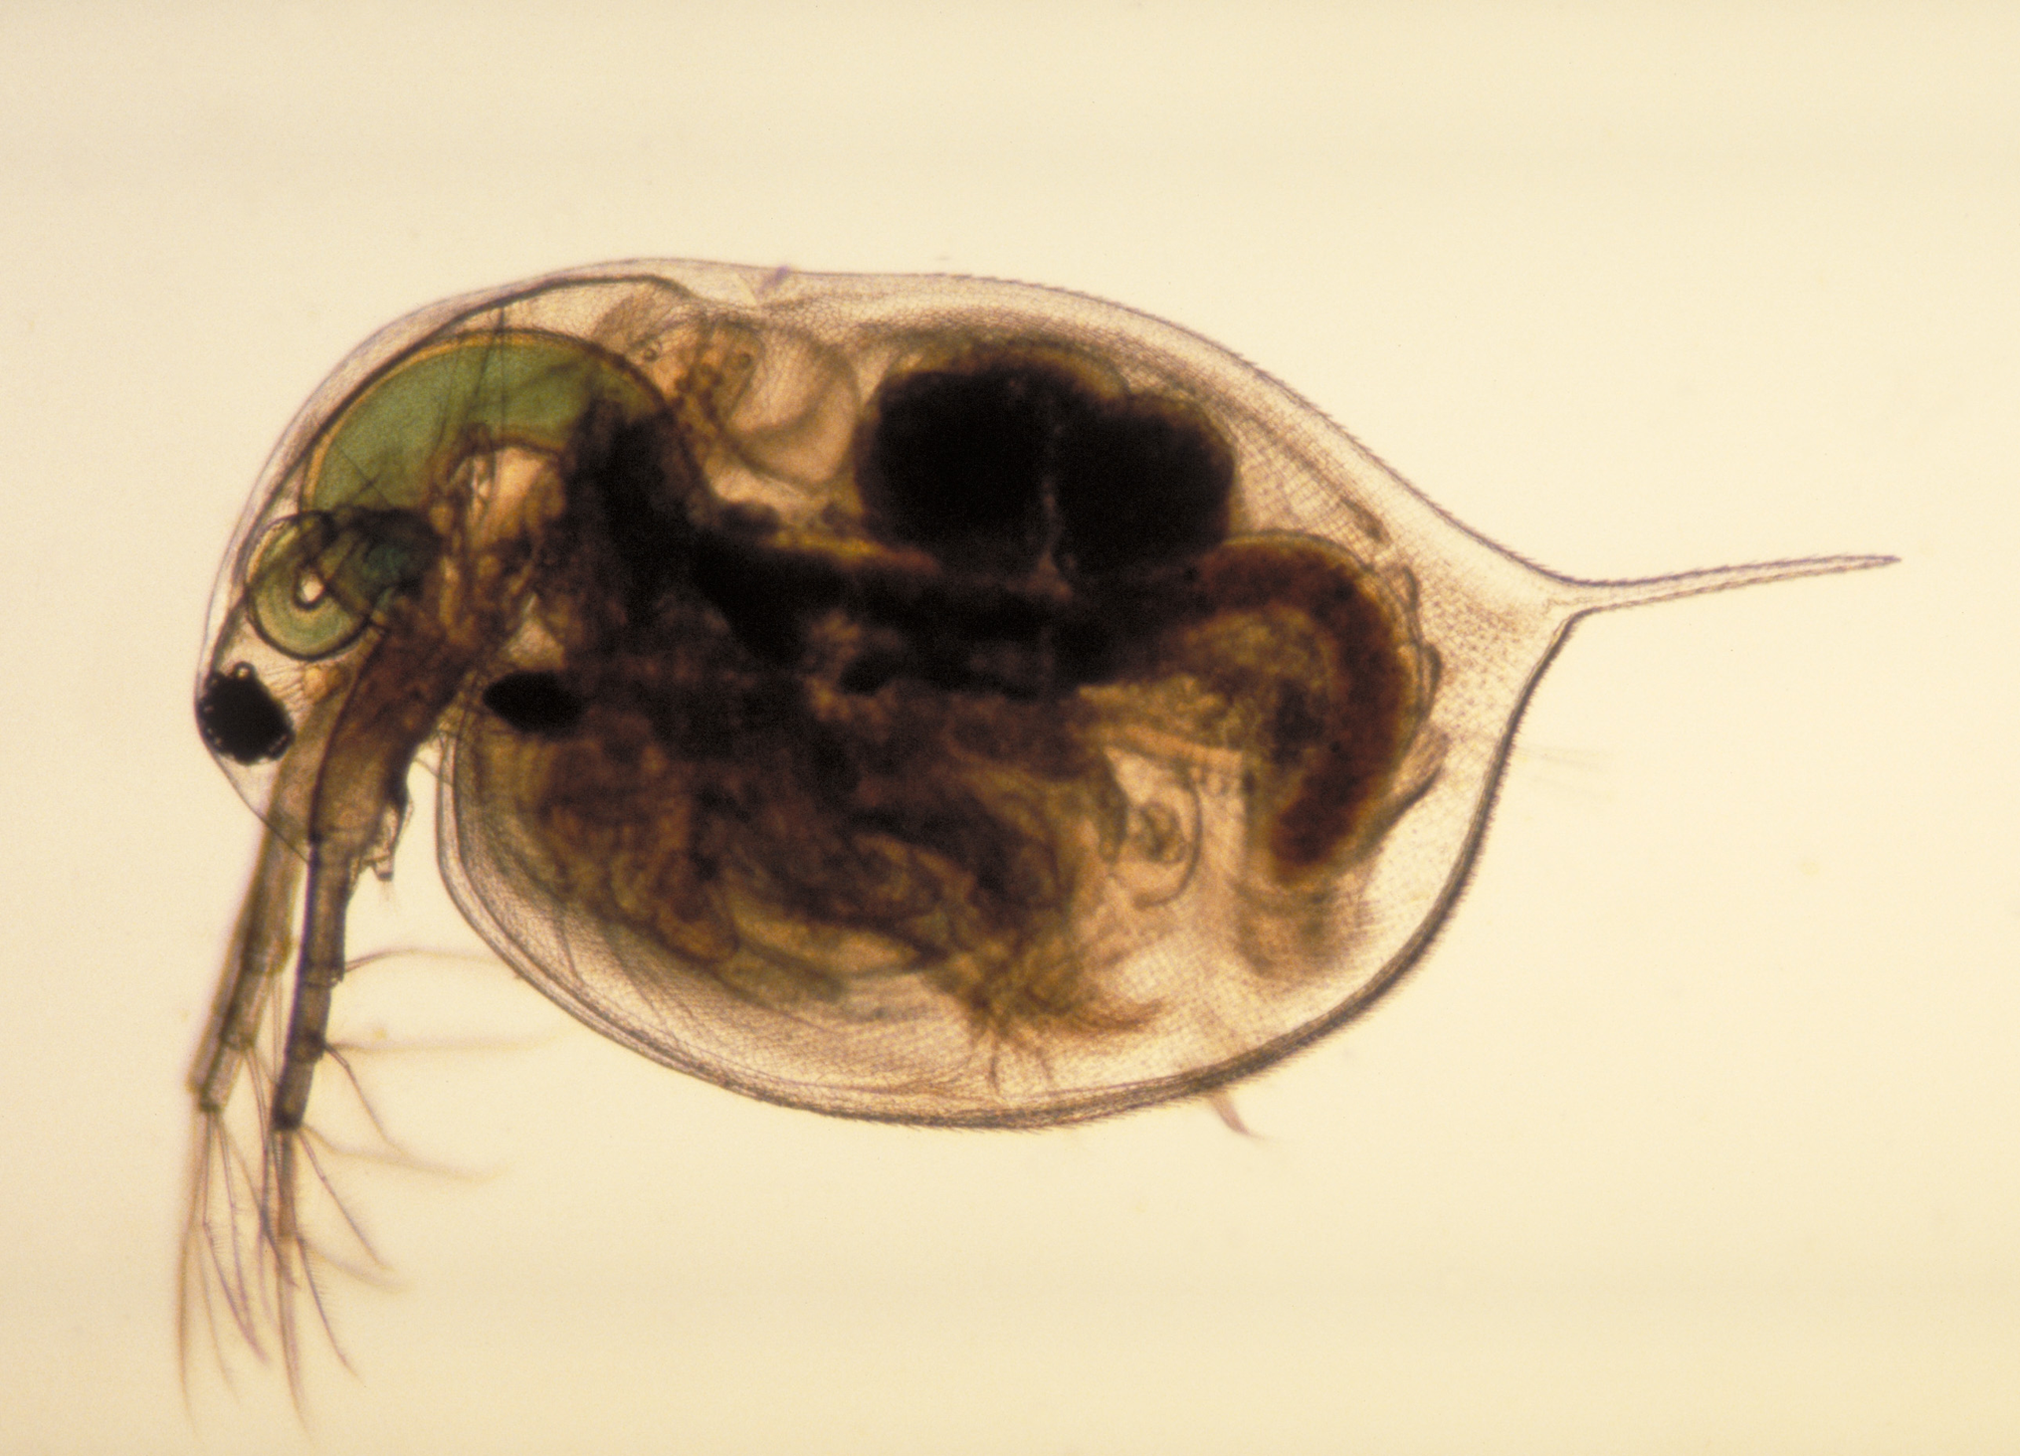 The Effect Of Ibuprofen On The Heart Rate Of The Daphnia Crustacean